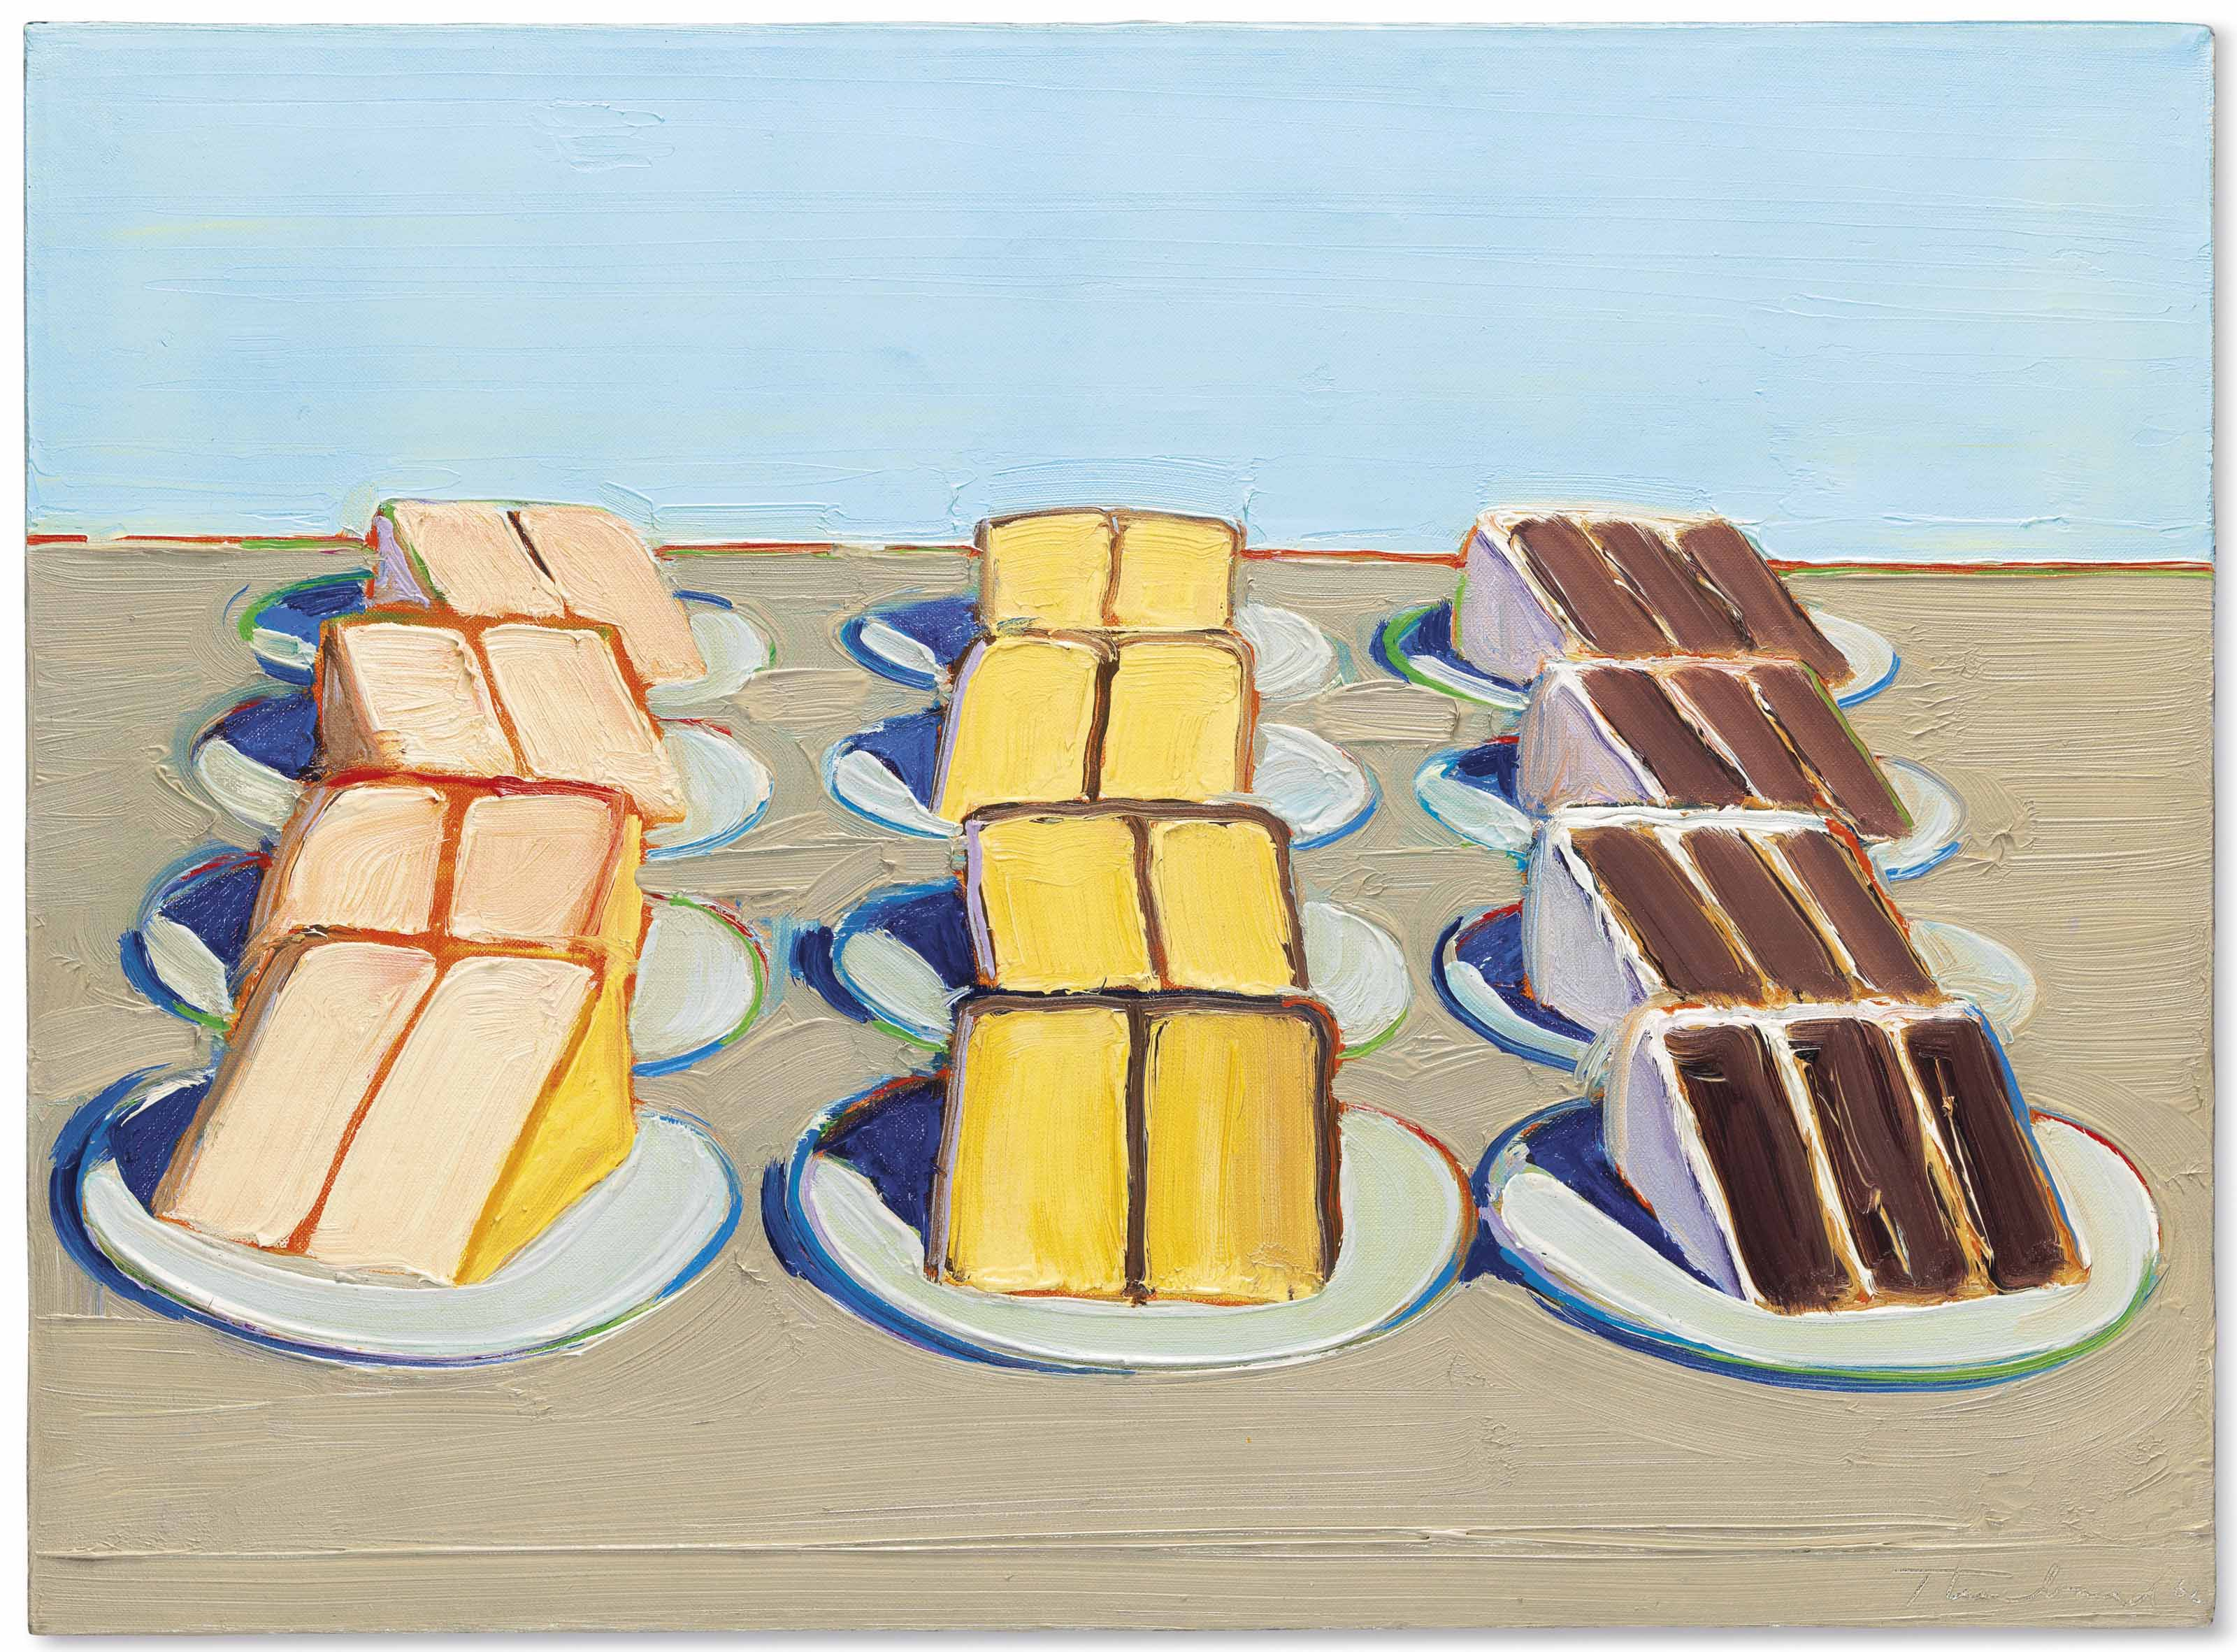 famous works of art about food, simple meals and feasting